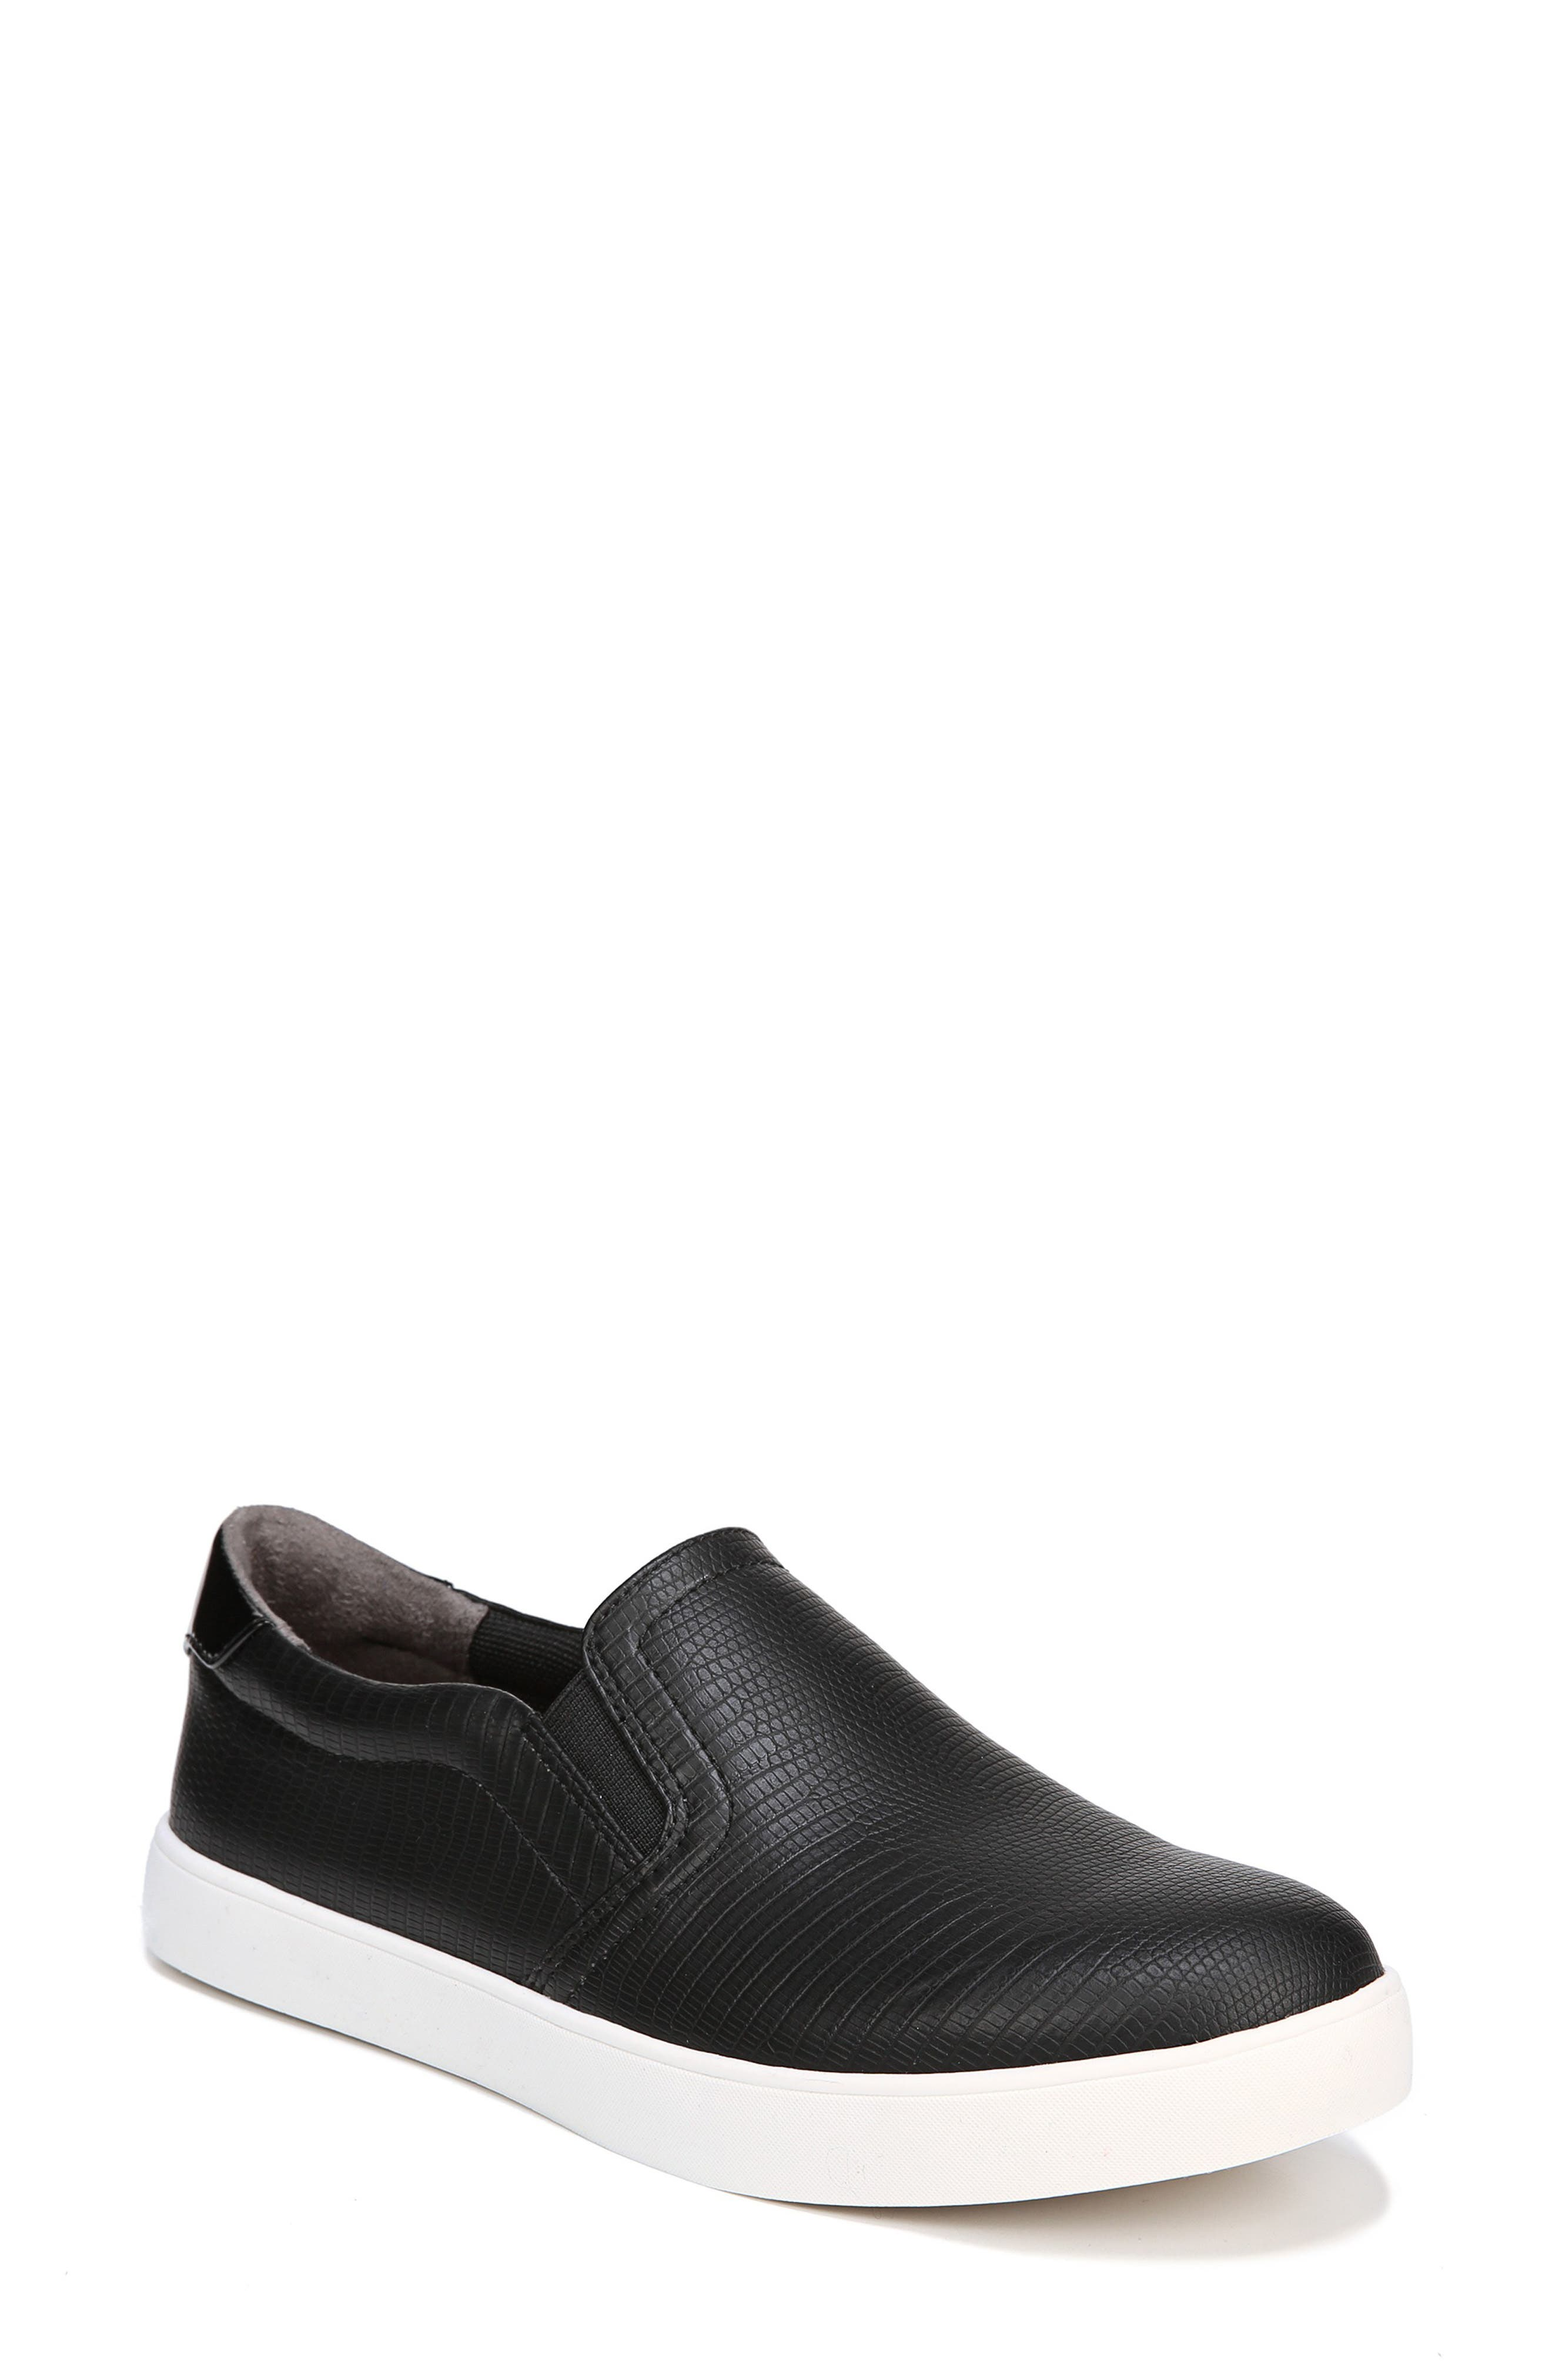 Madison Slip-On Sneaker,                             Main thumbnail 1, color,                             BLACK FAUX LEATHER